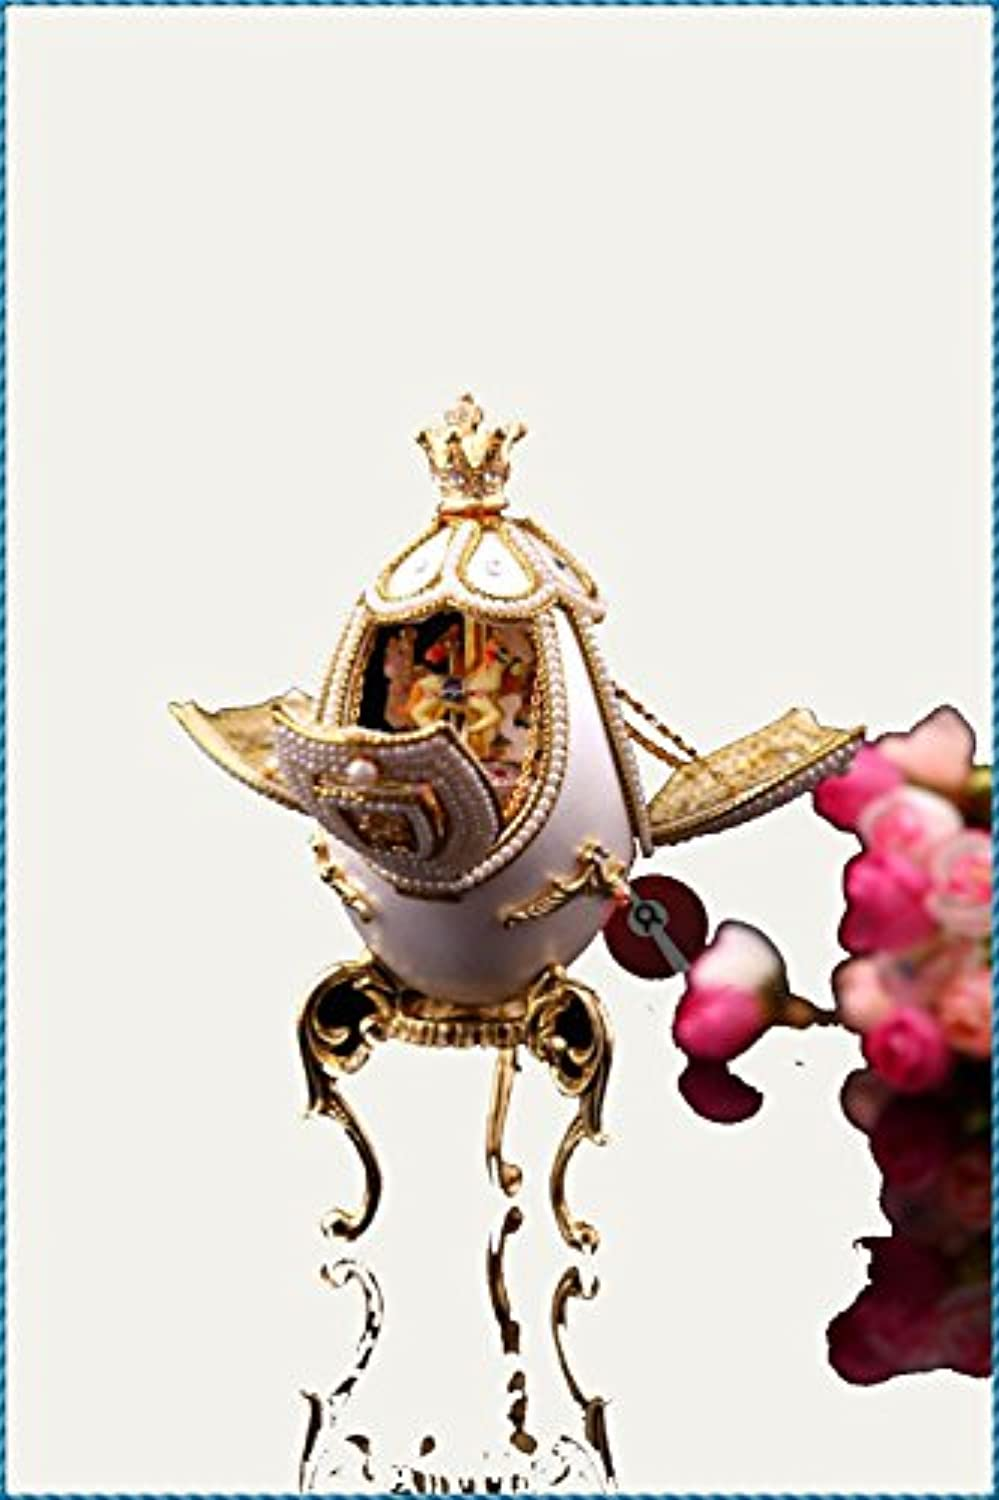 oofyhome Royal Horse Carousel MusicボックスArtware/誕生日gift-wedding Small Ornaments